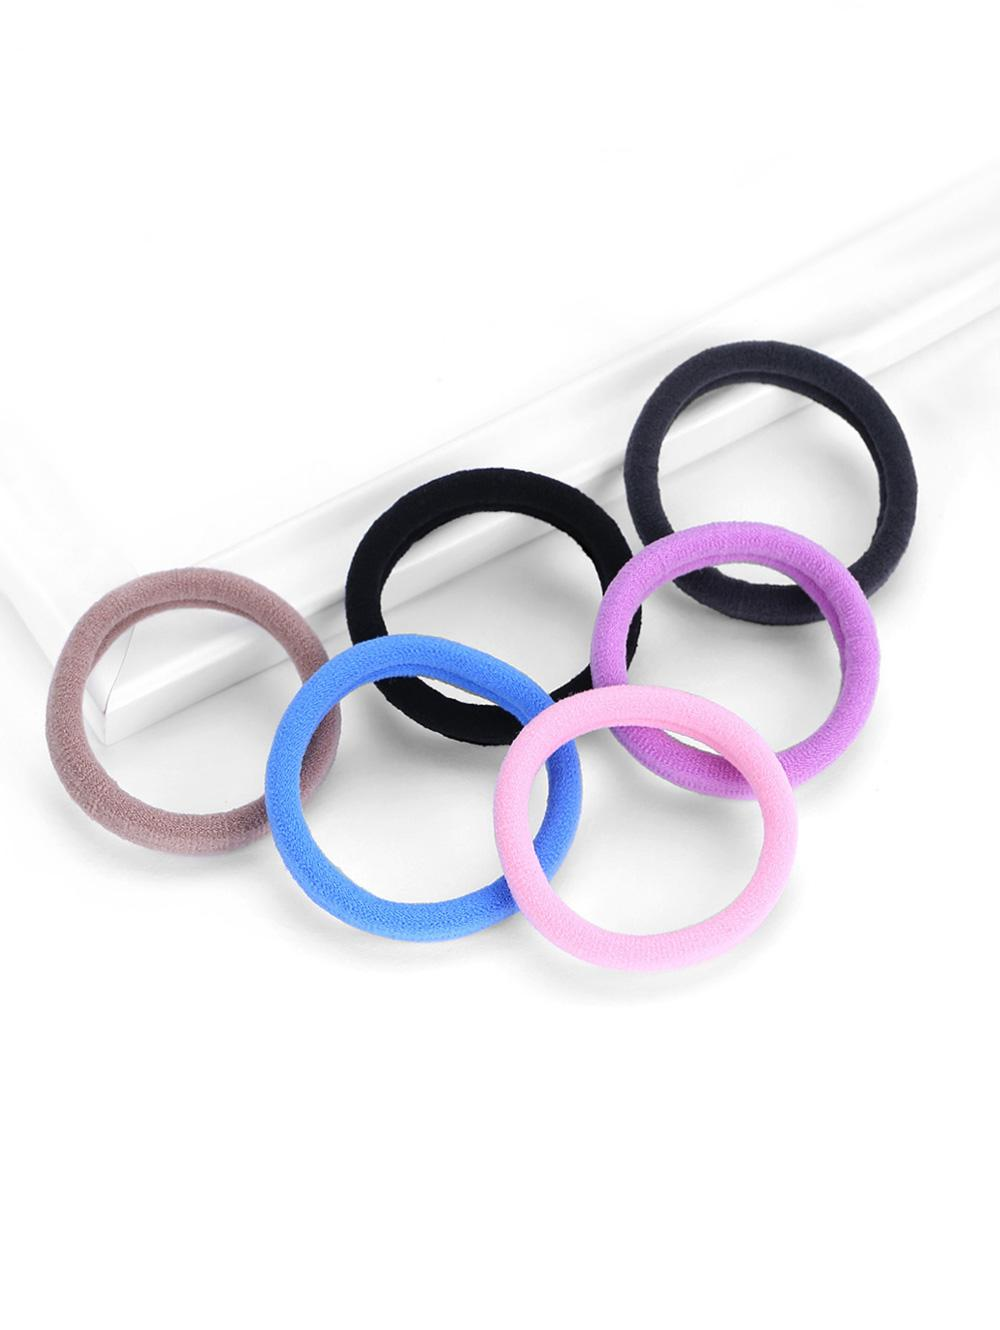 20 Piece Multi-color Simple Style Elastic Hair Bands Set